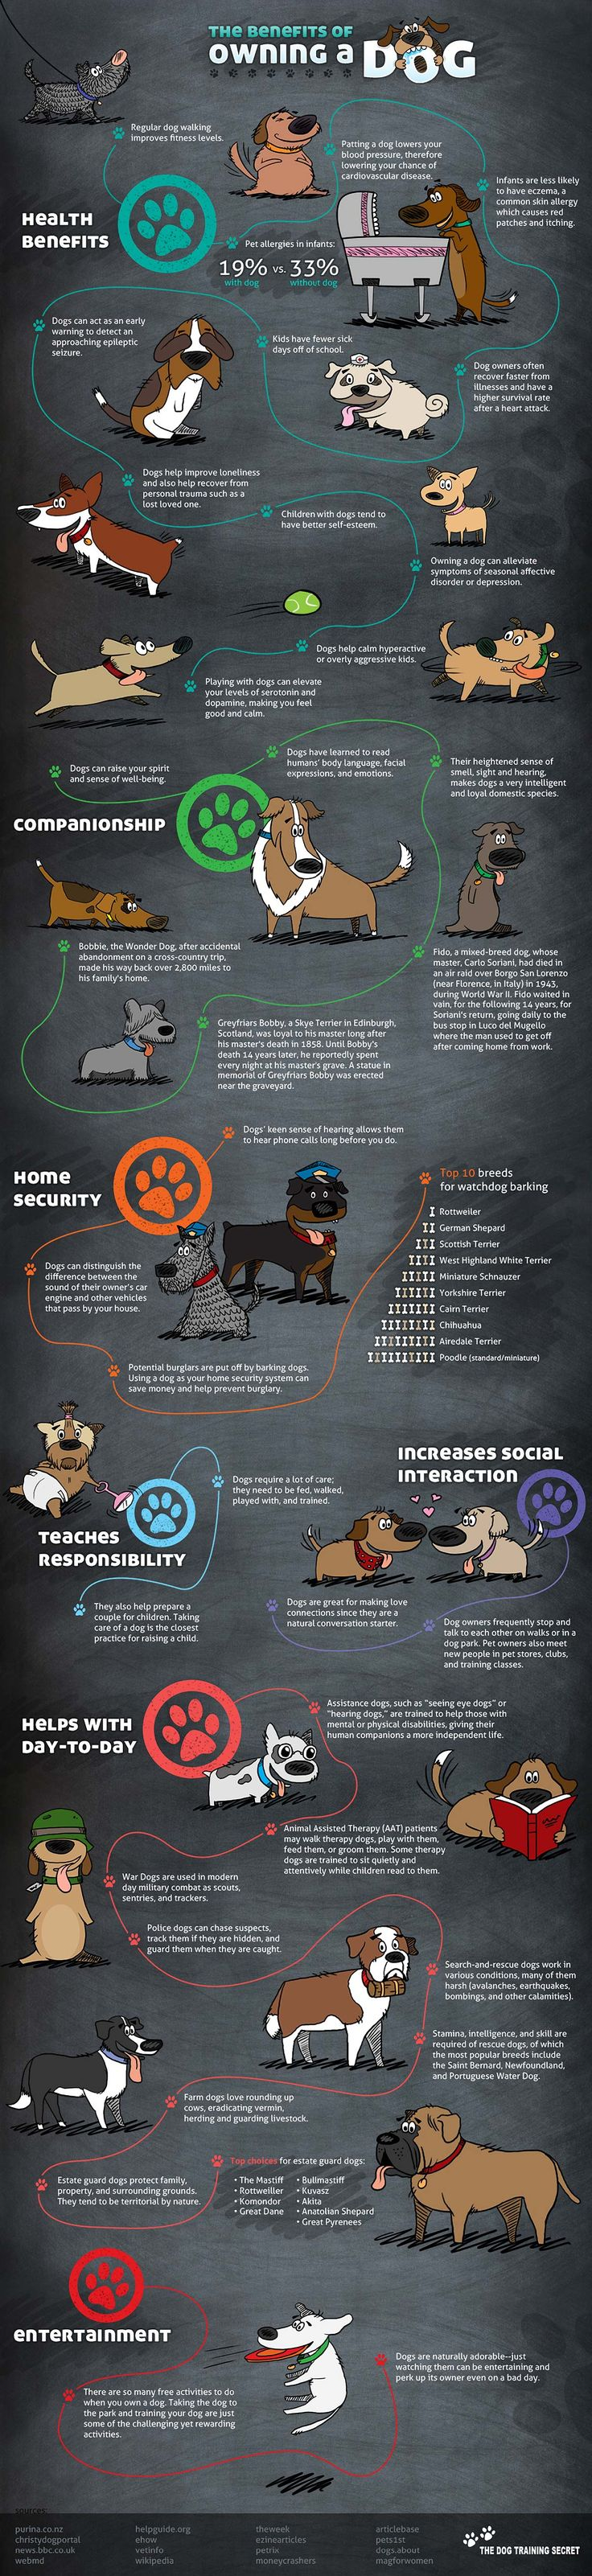 38 Benefits of Owning A Dog